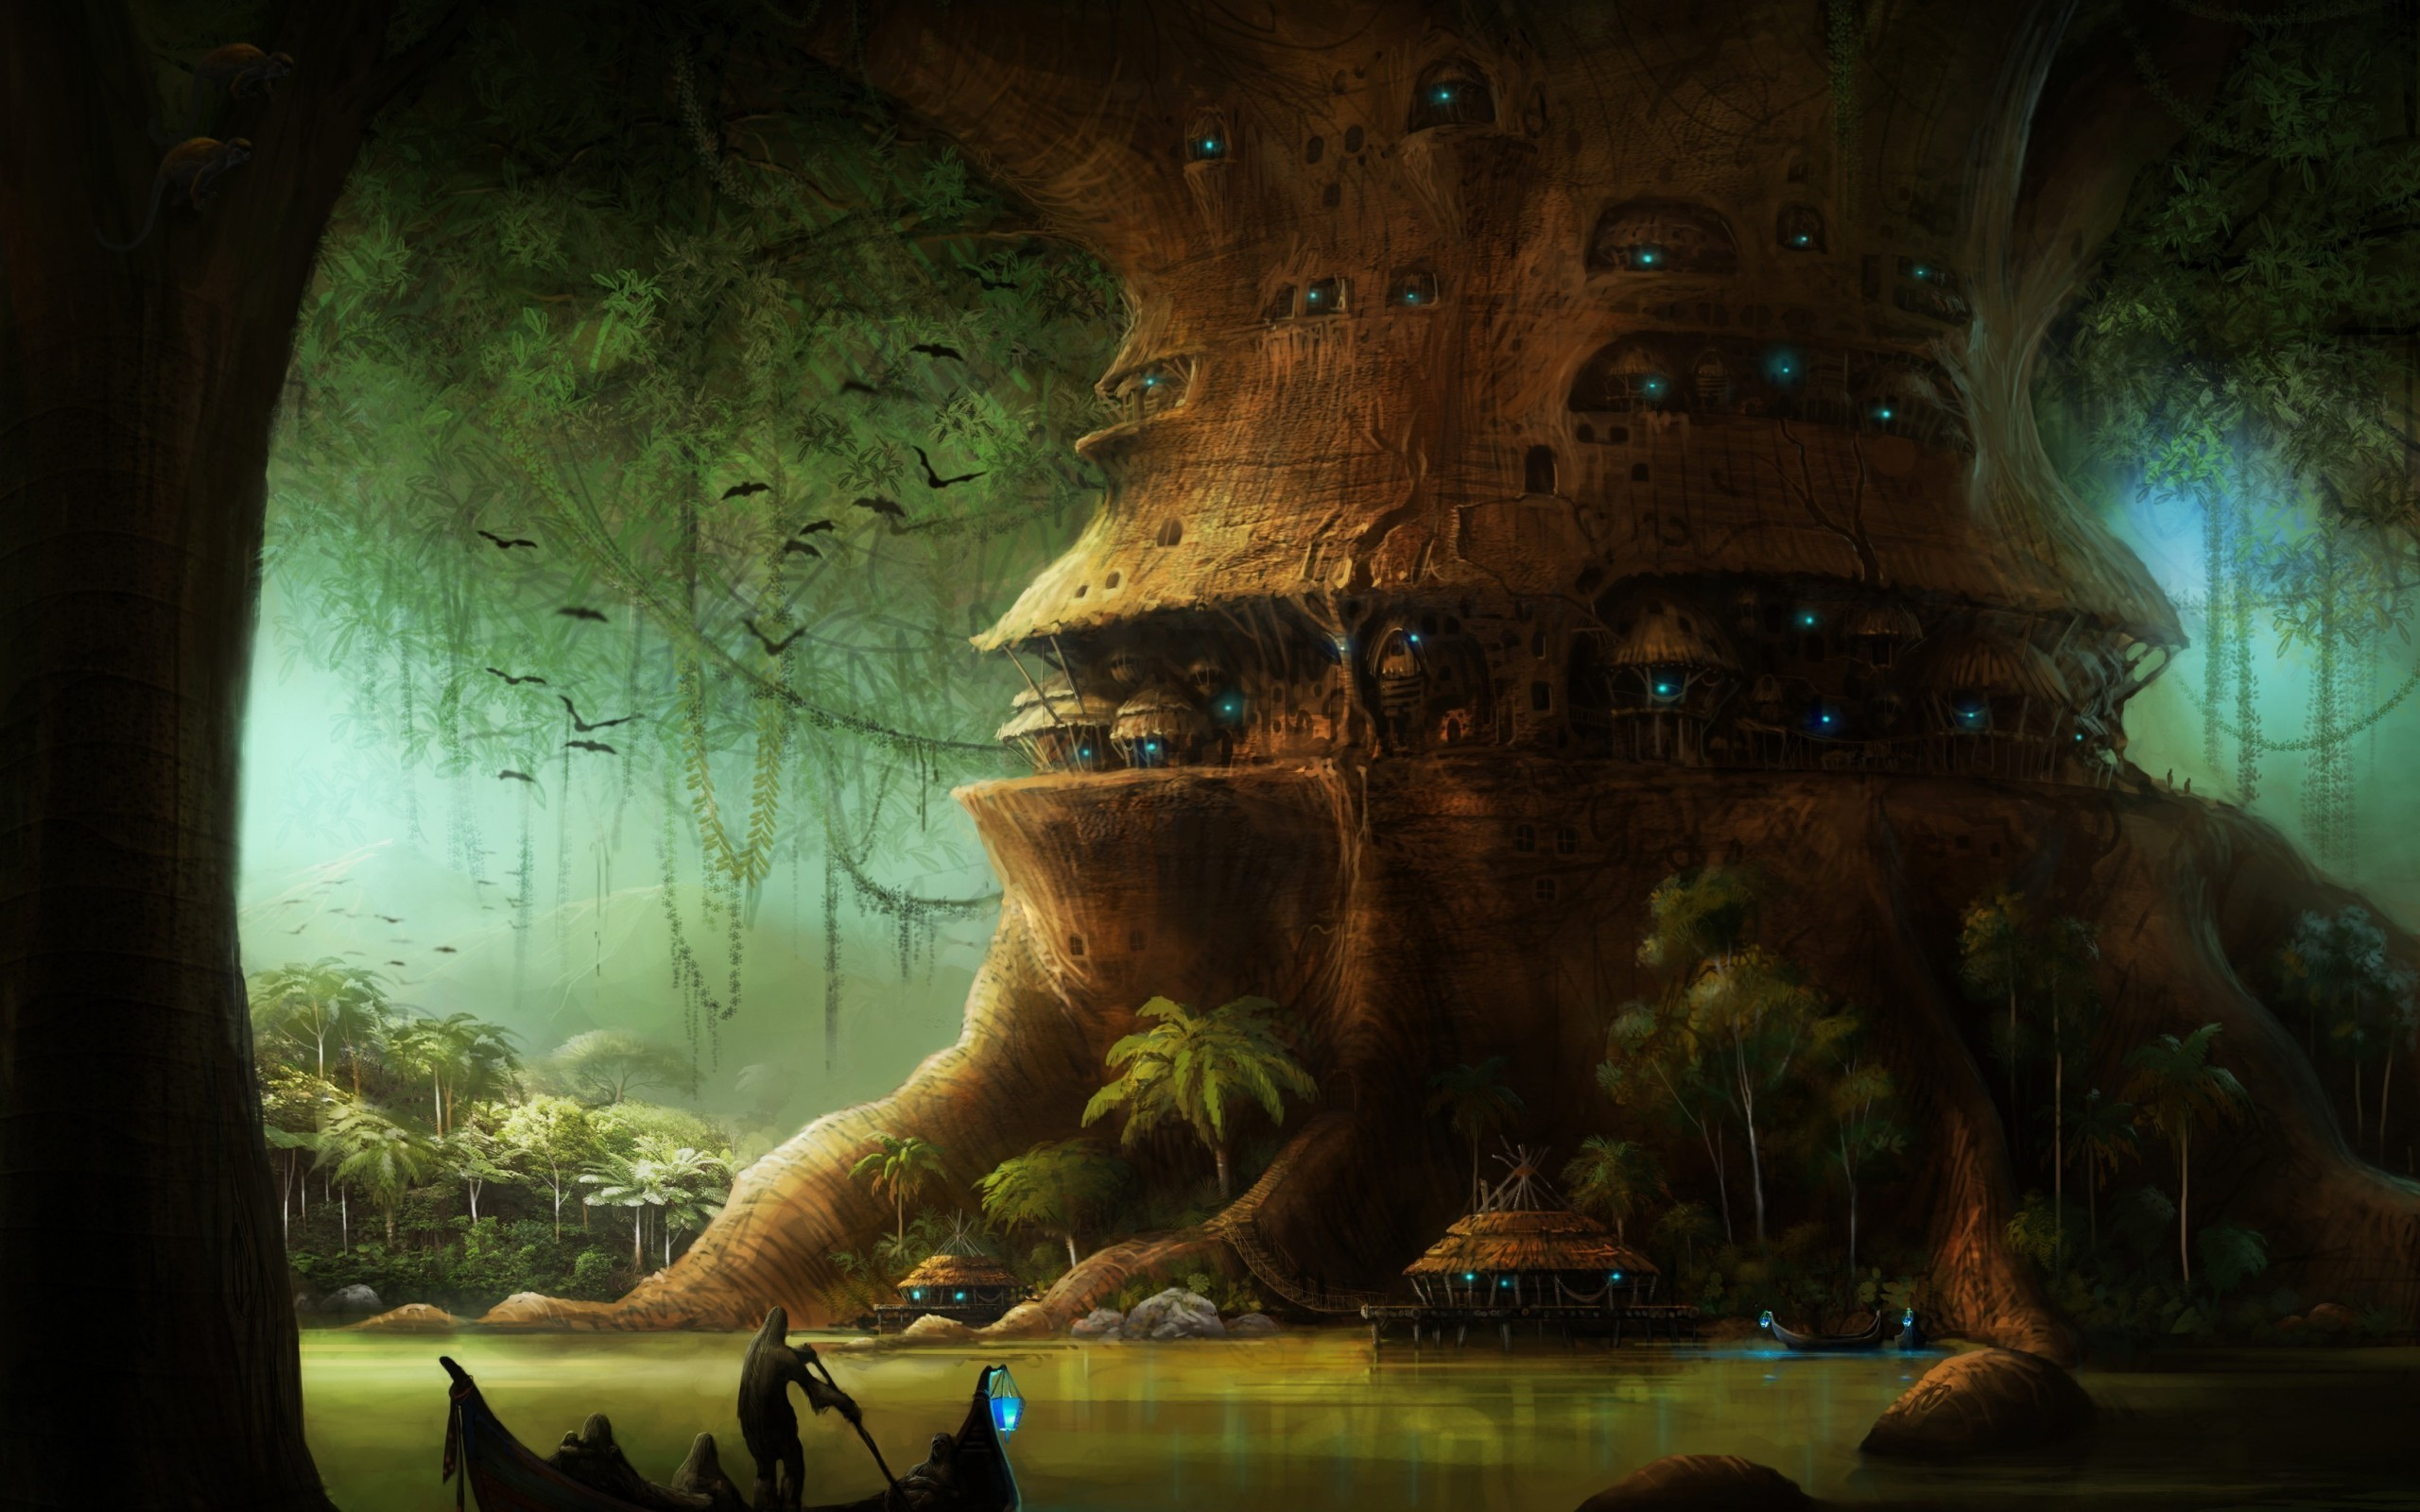 Fantasy - City  - Tree - Postnuclear - Nuclear - Fantasy Wallpaper